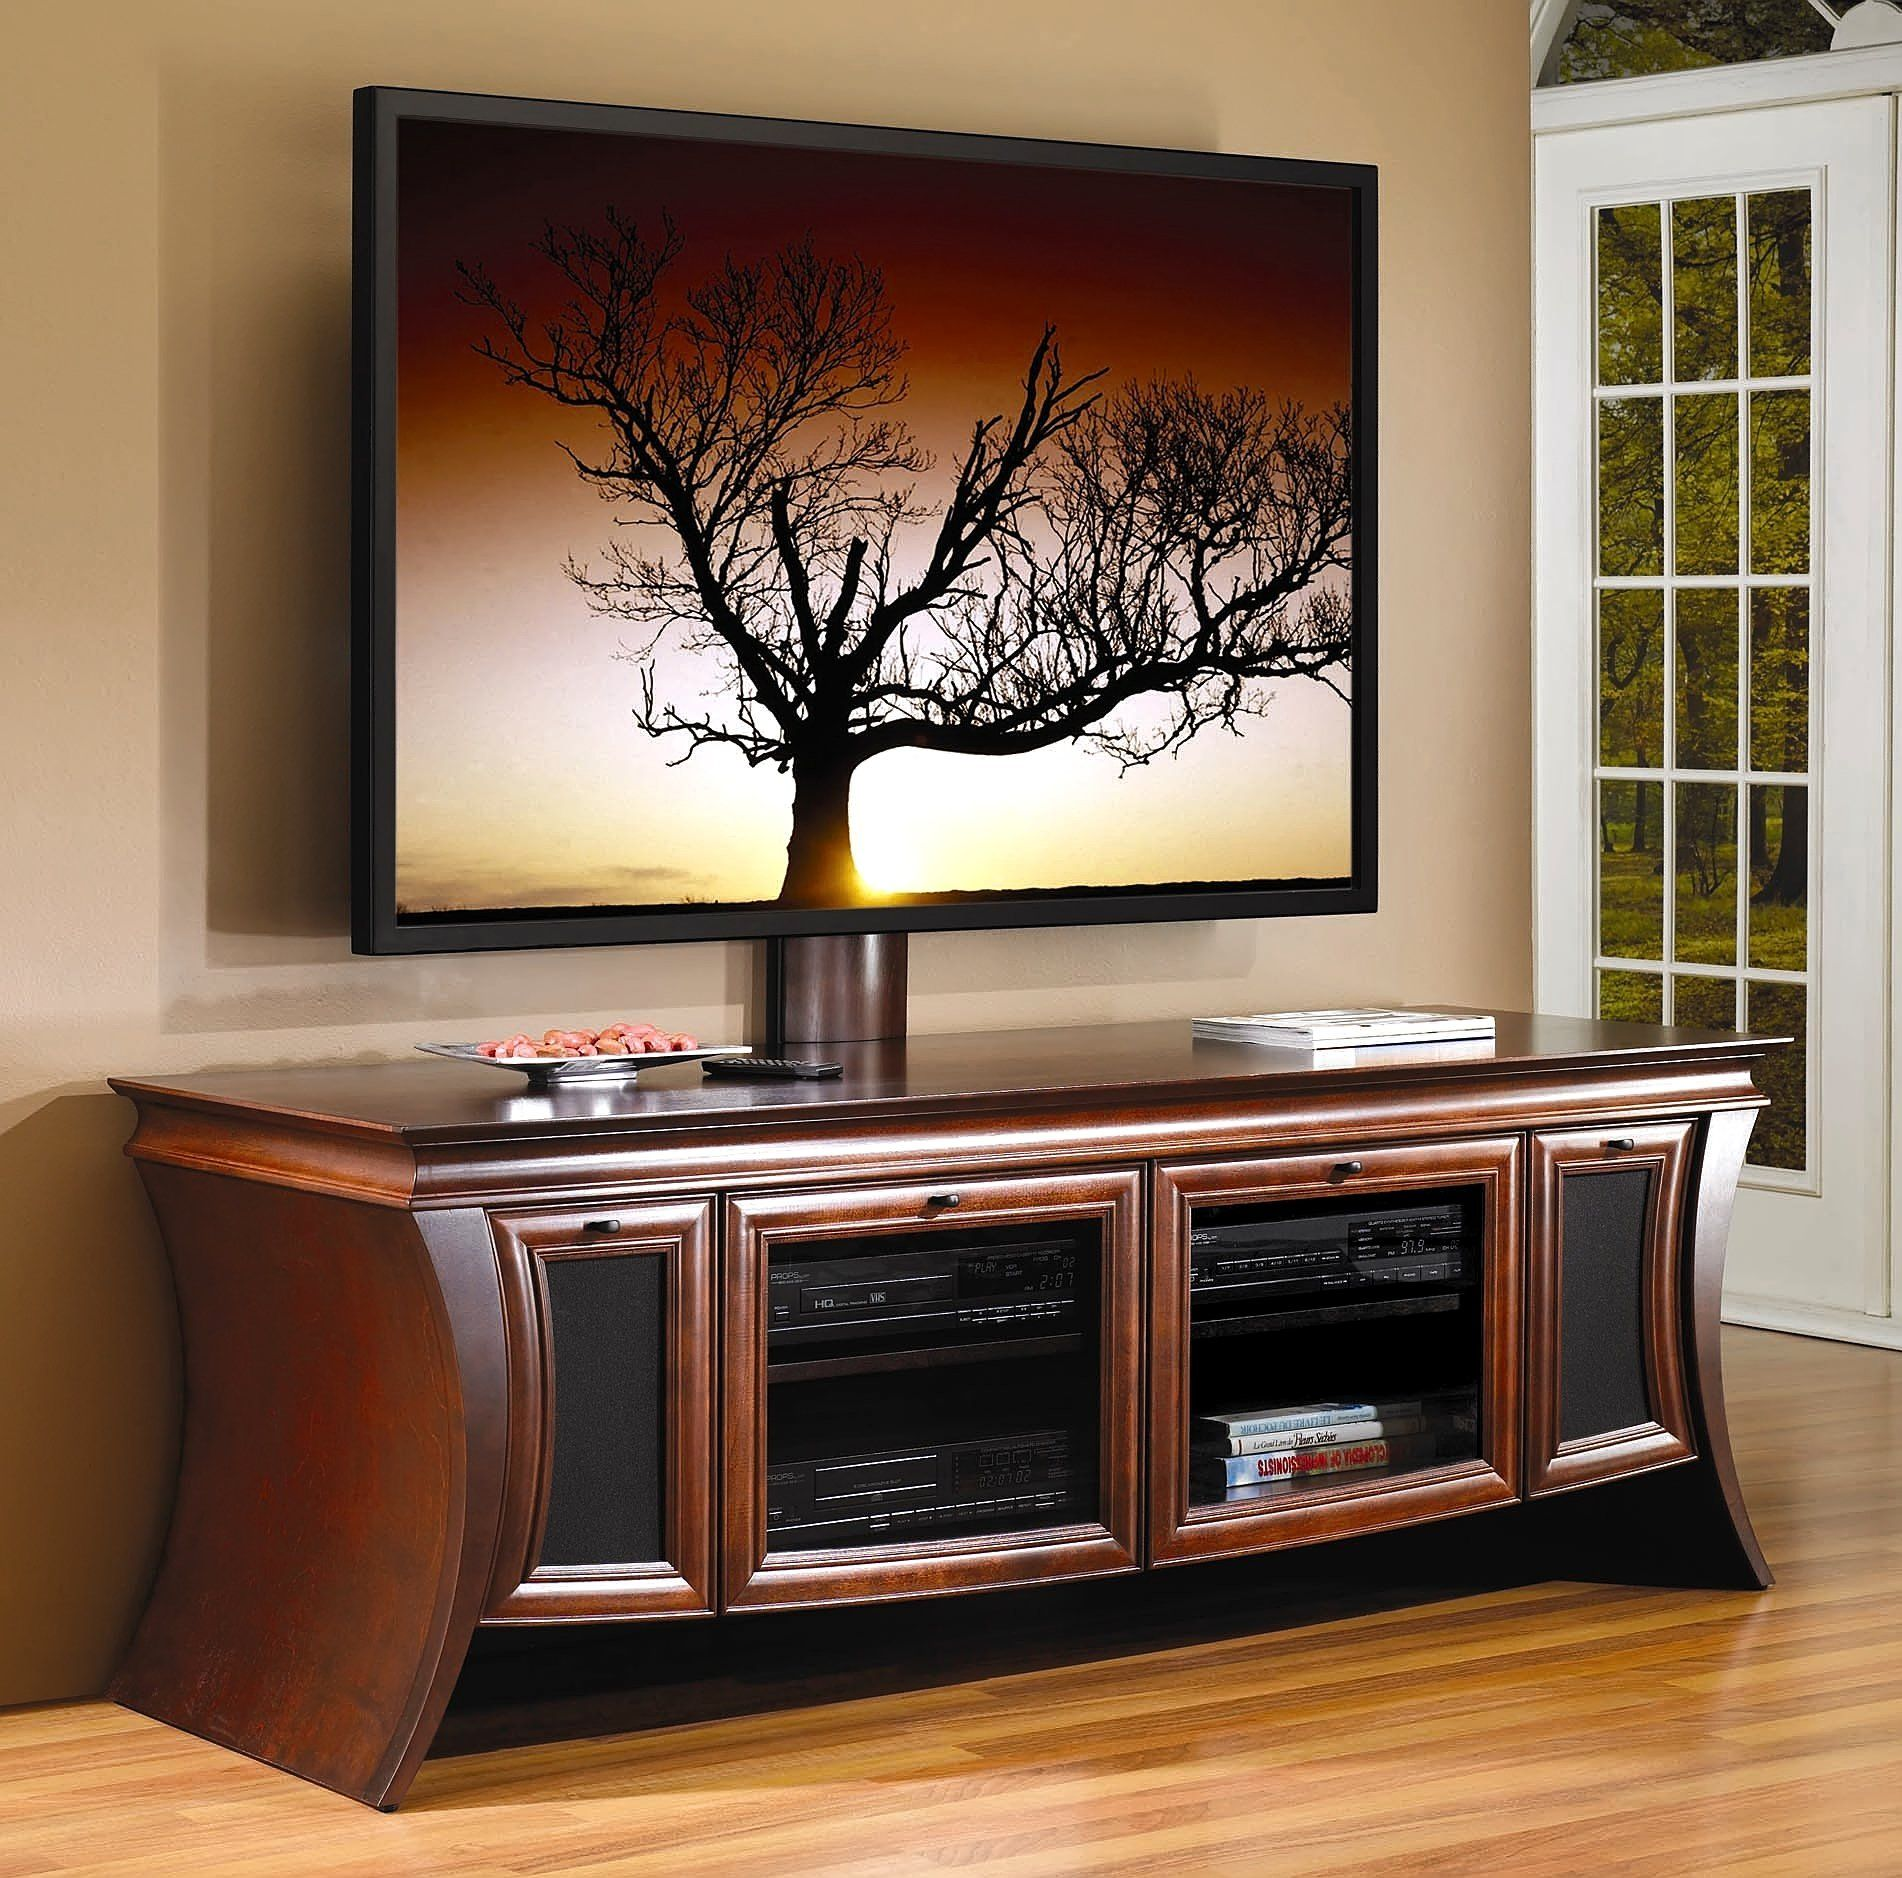 Wood Flat Screen Curved Tv Stands Photo Of Entertainment Center W Panel Support In Autumn